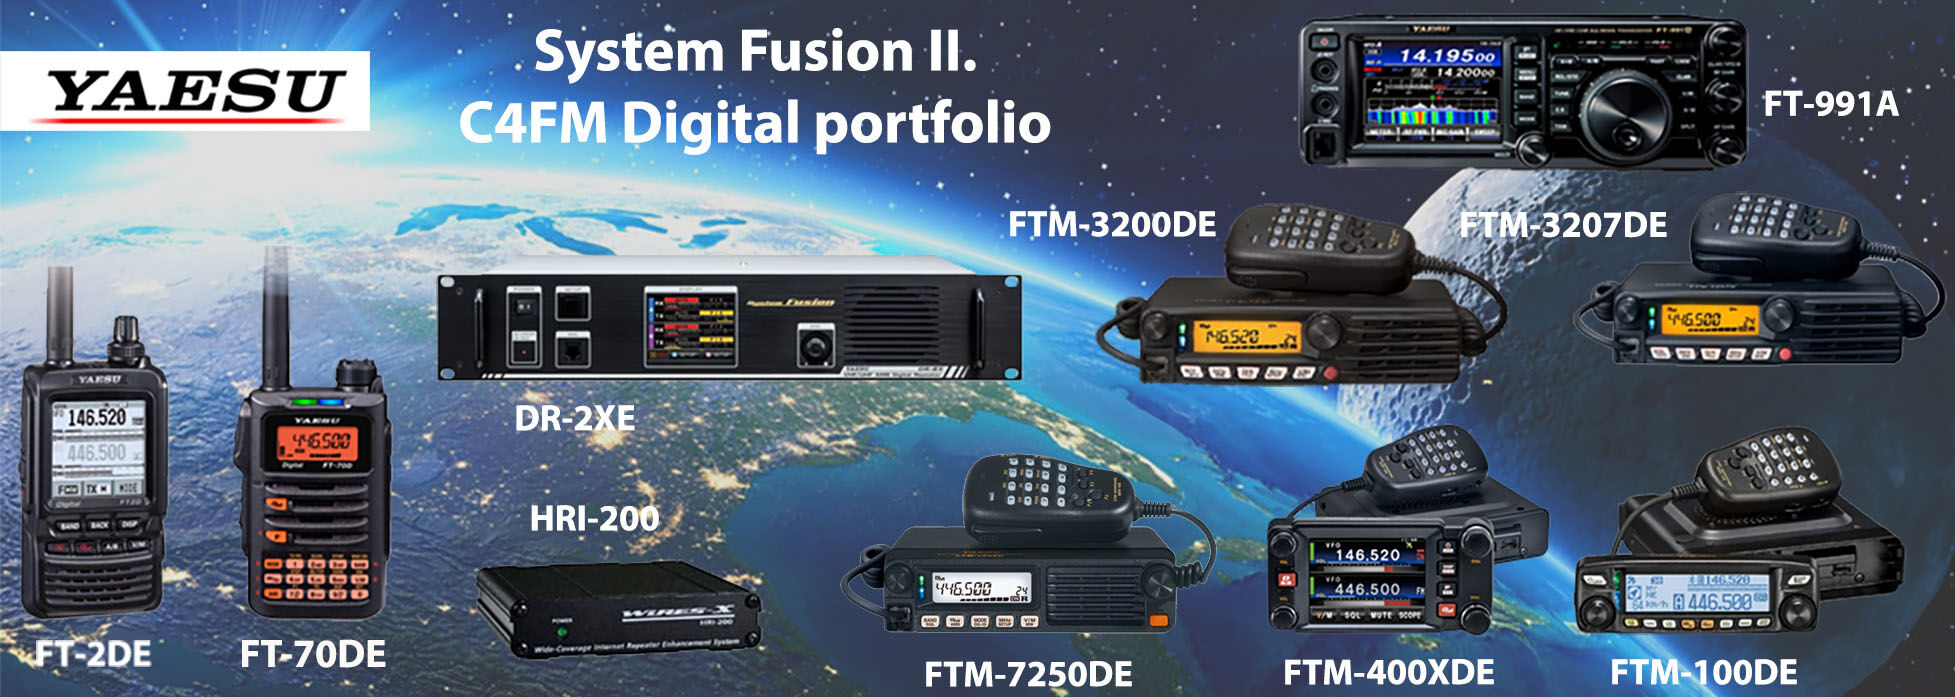 system fusion II.